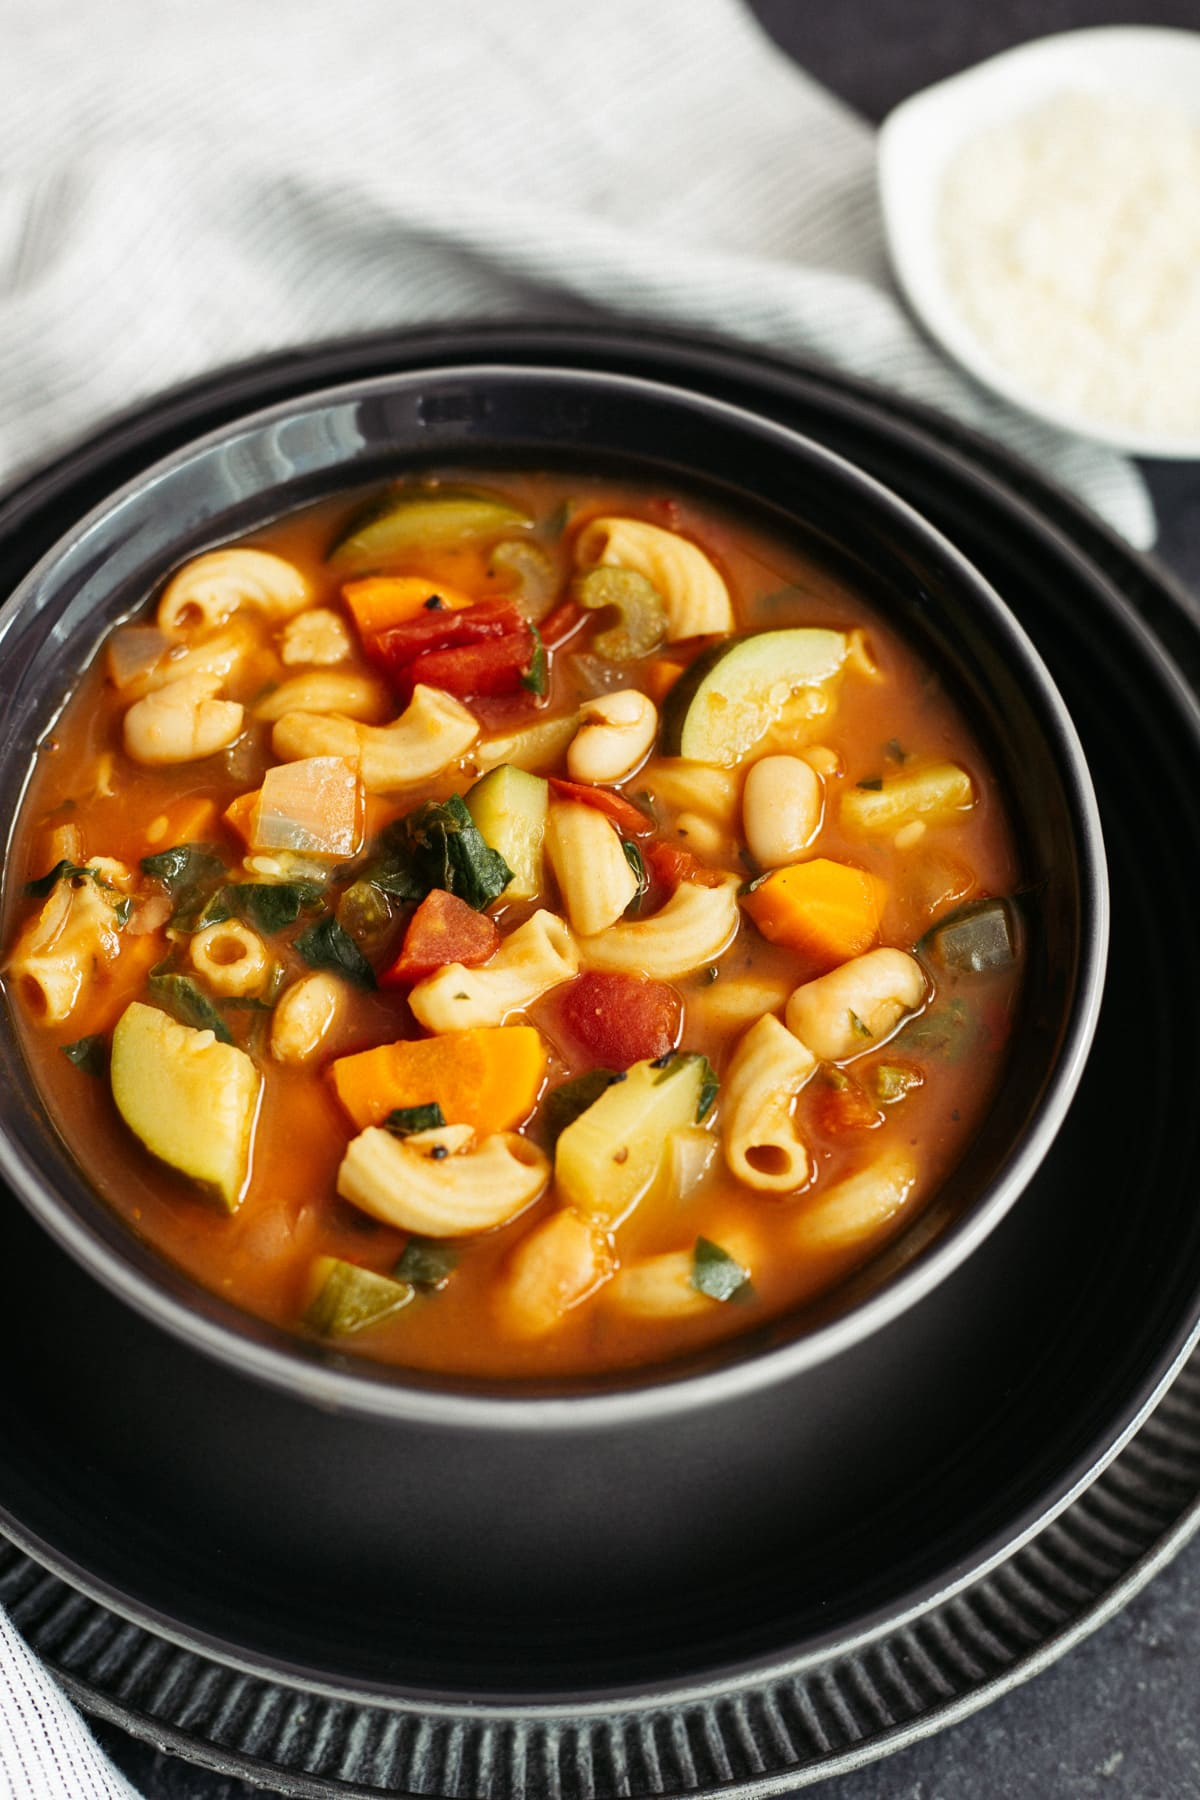 minestrone soup with pasta and vegetables in black bowl